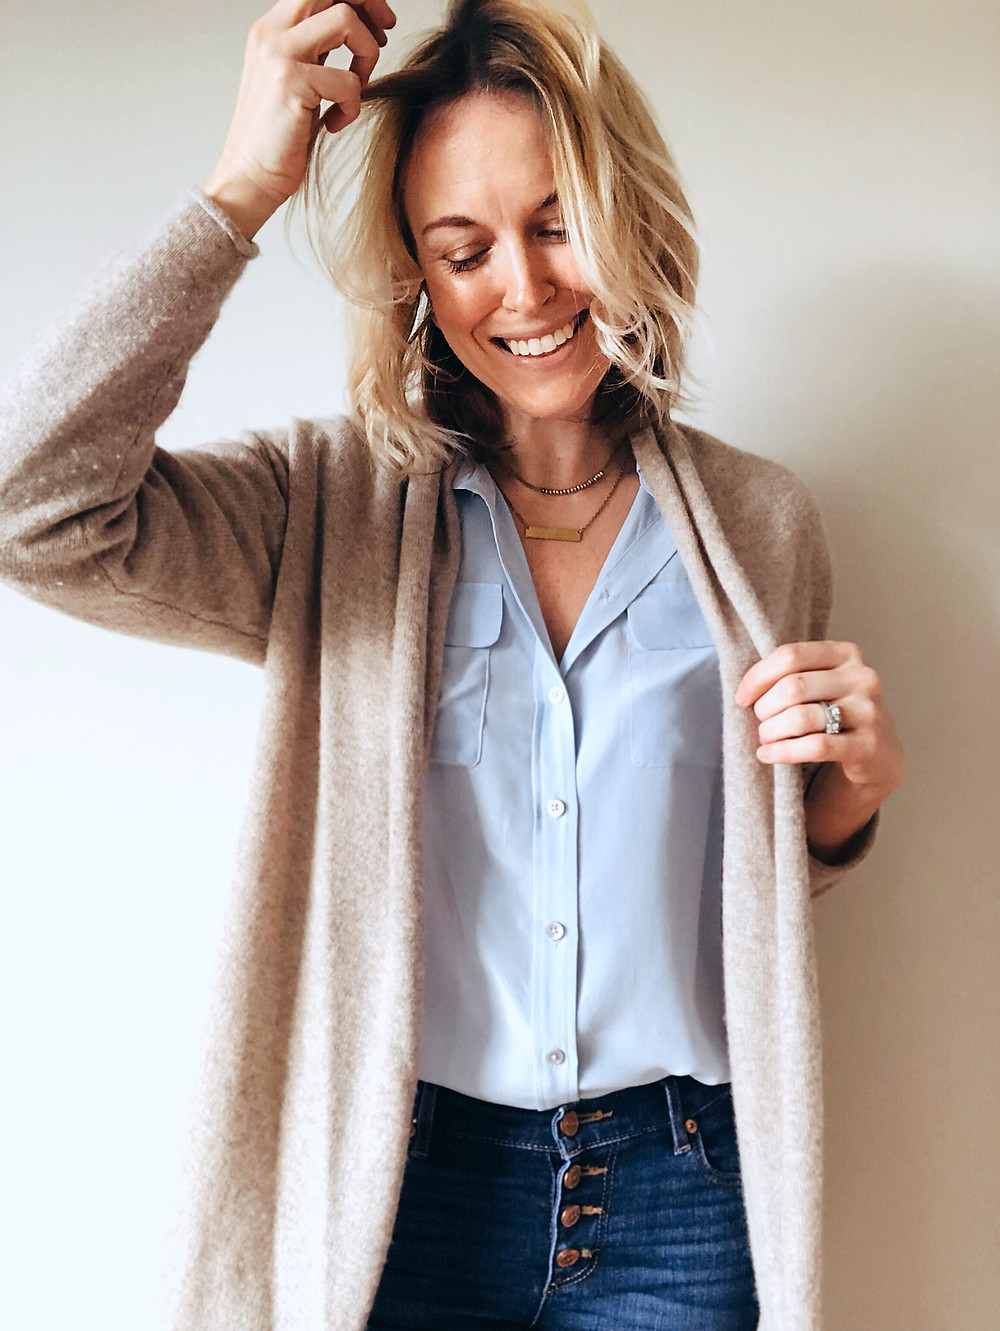 Light tan cashmere cardigan draped over pale blue blouse and button-front blue jeans.